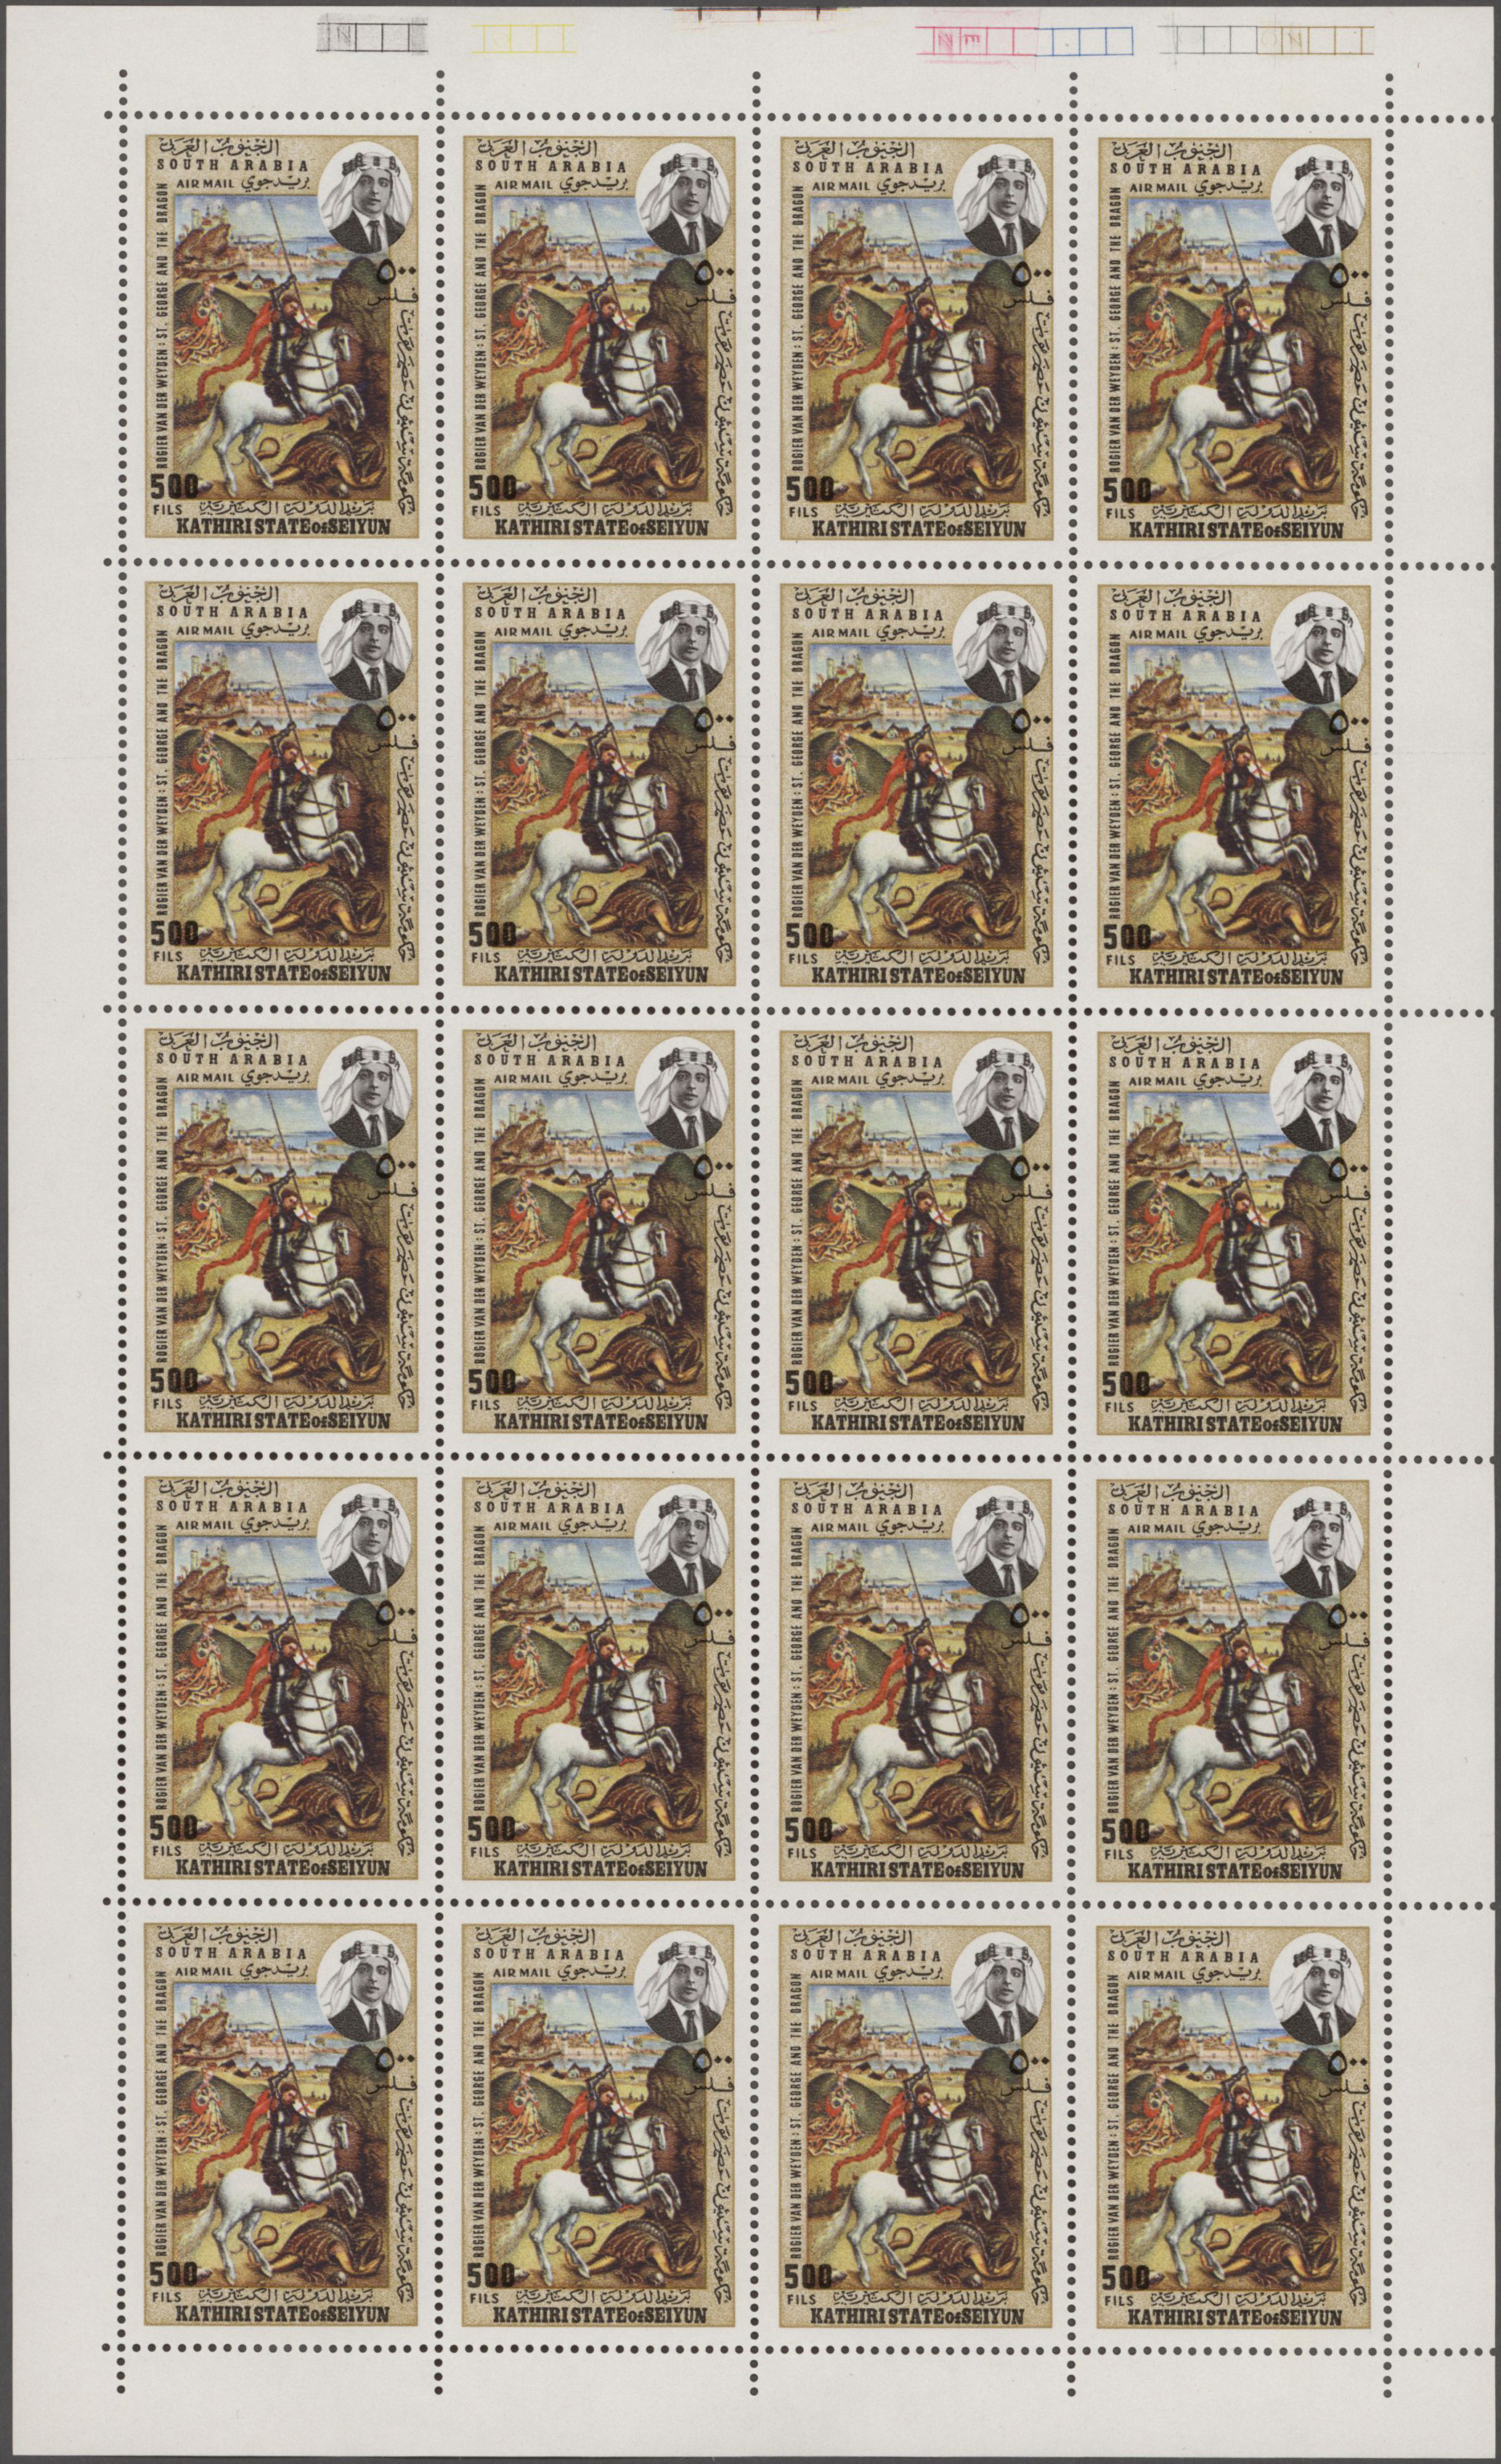 Lot 00012 - Aden - Kathiri State of Seiyun  -  Auktionshaus Christoph Gärtner GmbH & Co. KG Special Auction 26.- 28. May 2020 Day 1 Collections Part 1